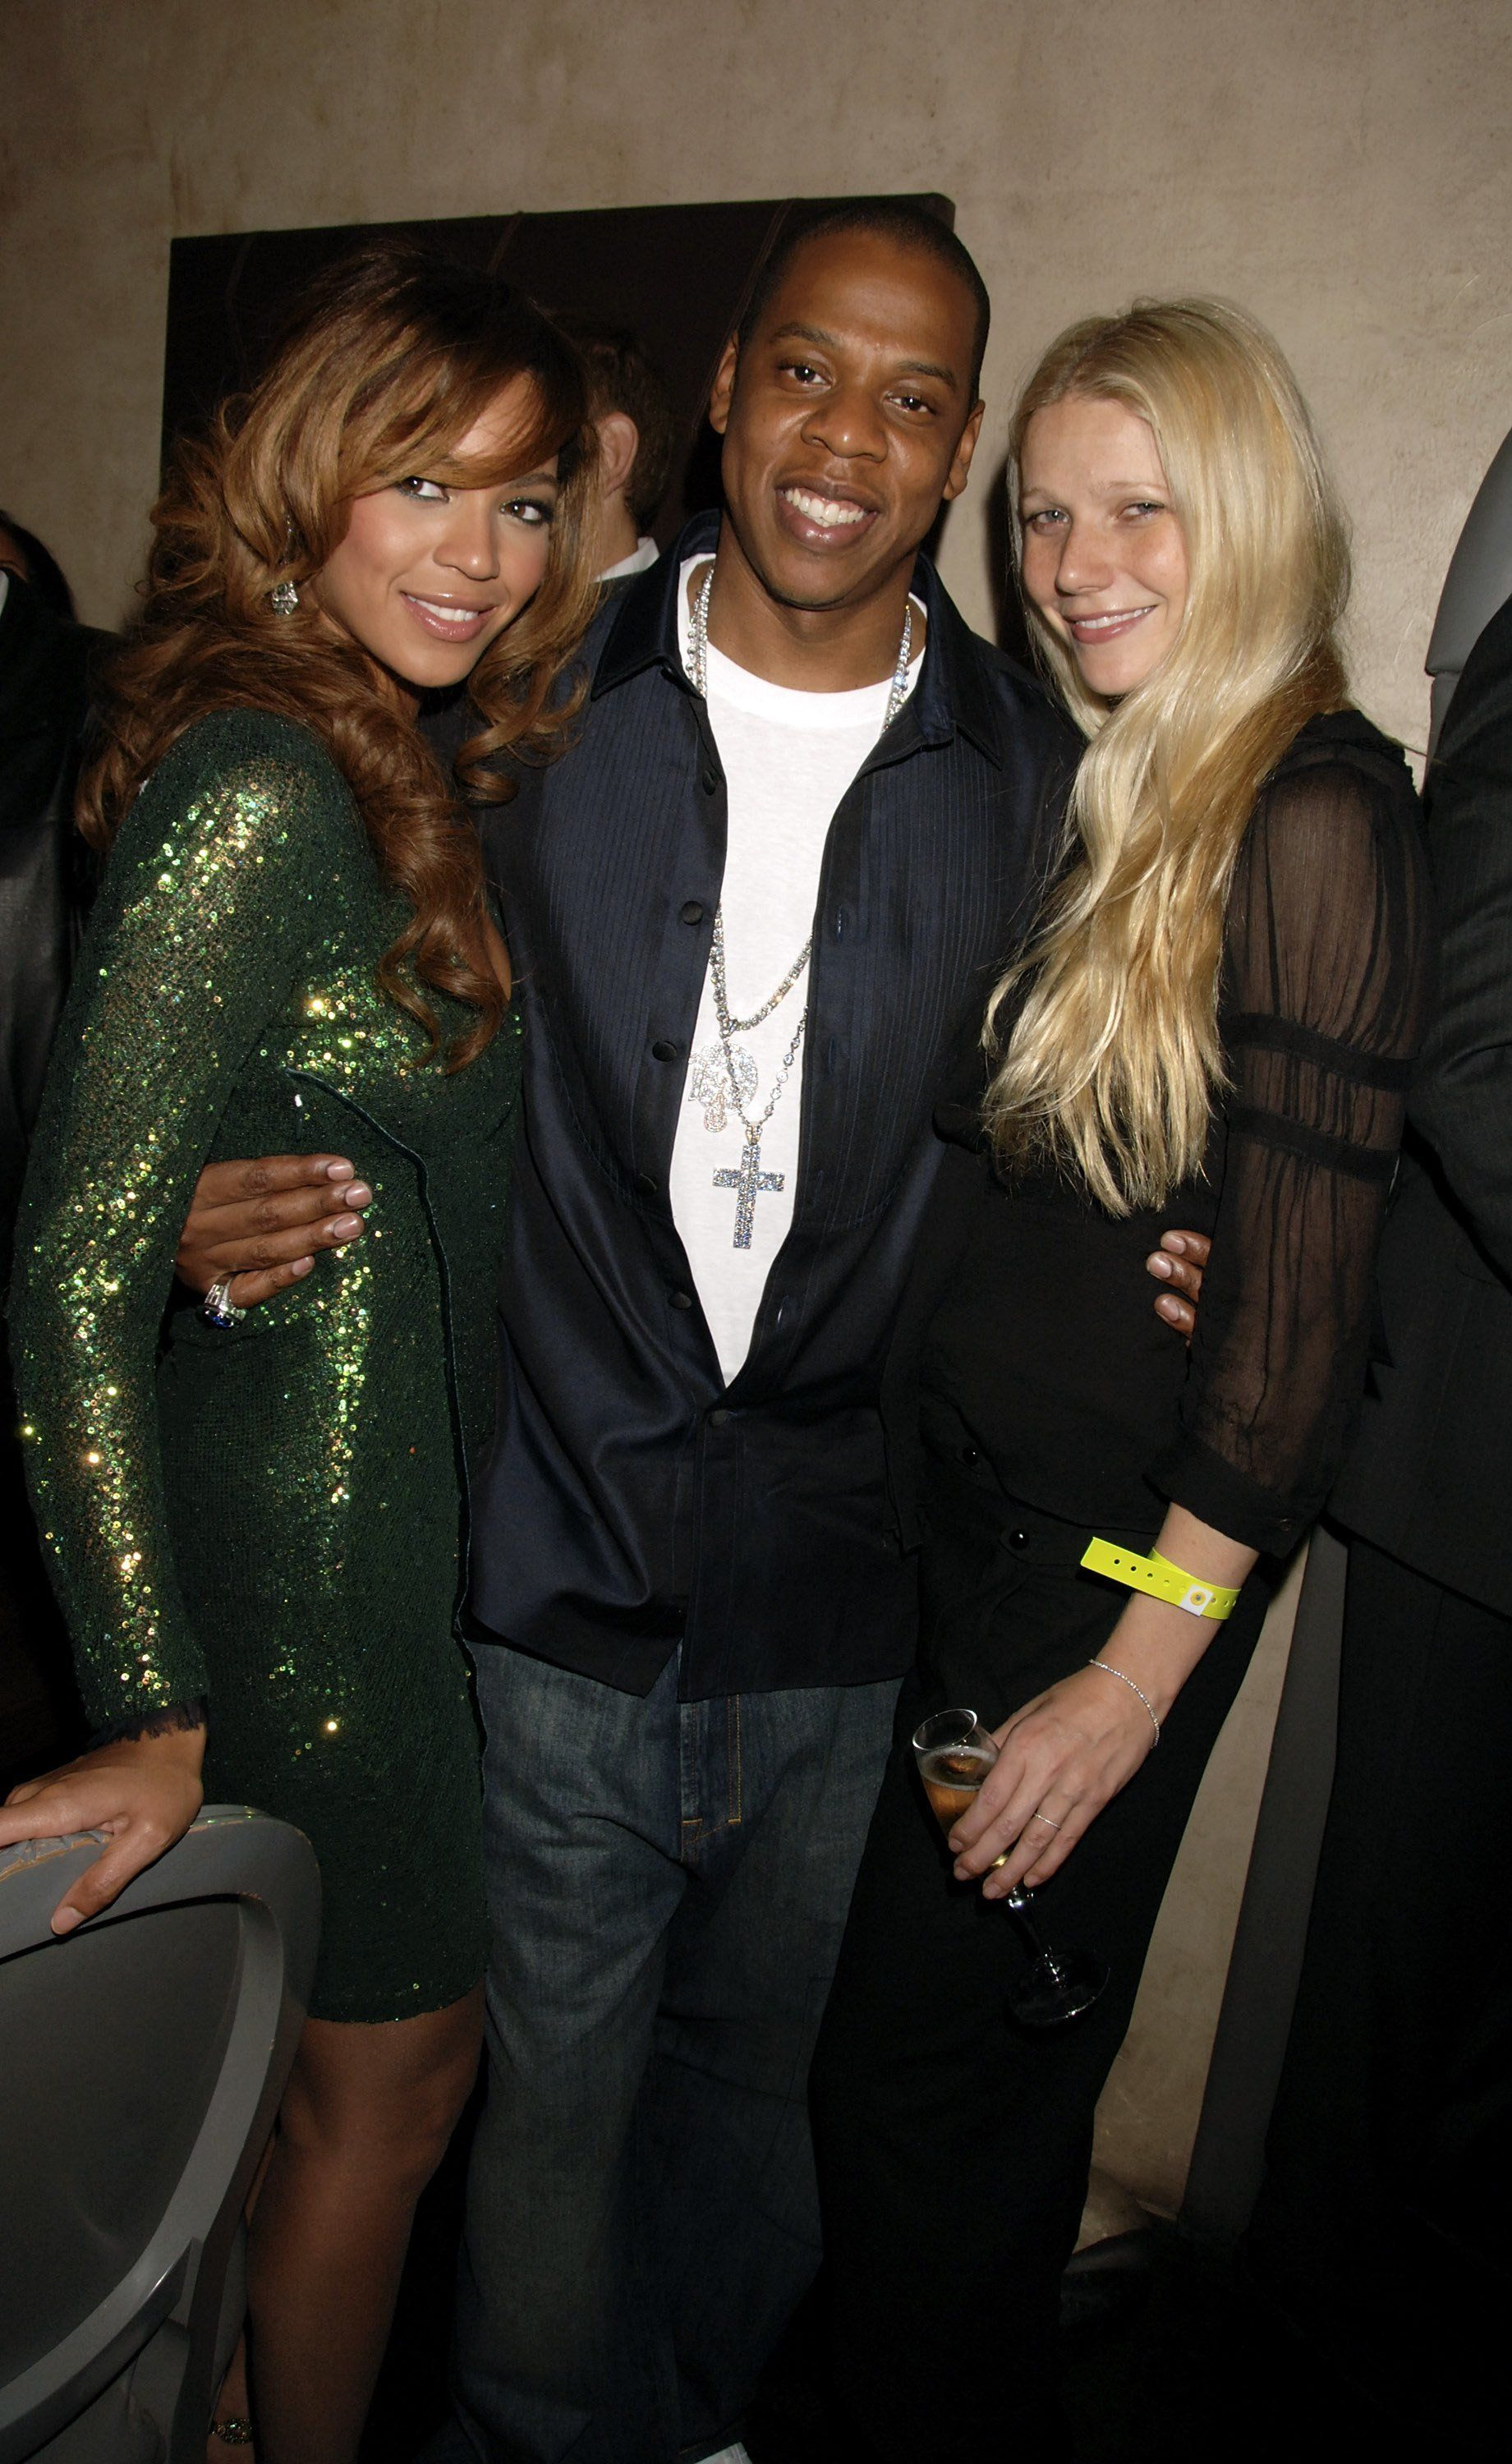 Gwyneth Paltrow Slams Rumor That She's Beyonce's 'Becky With The Good